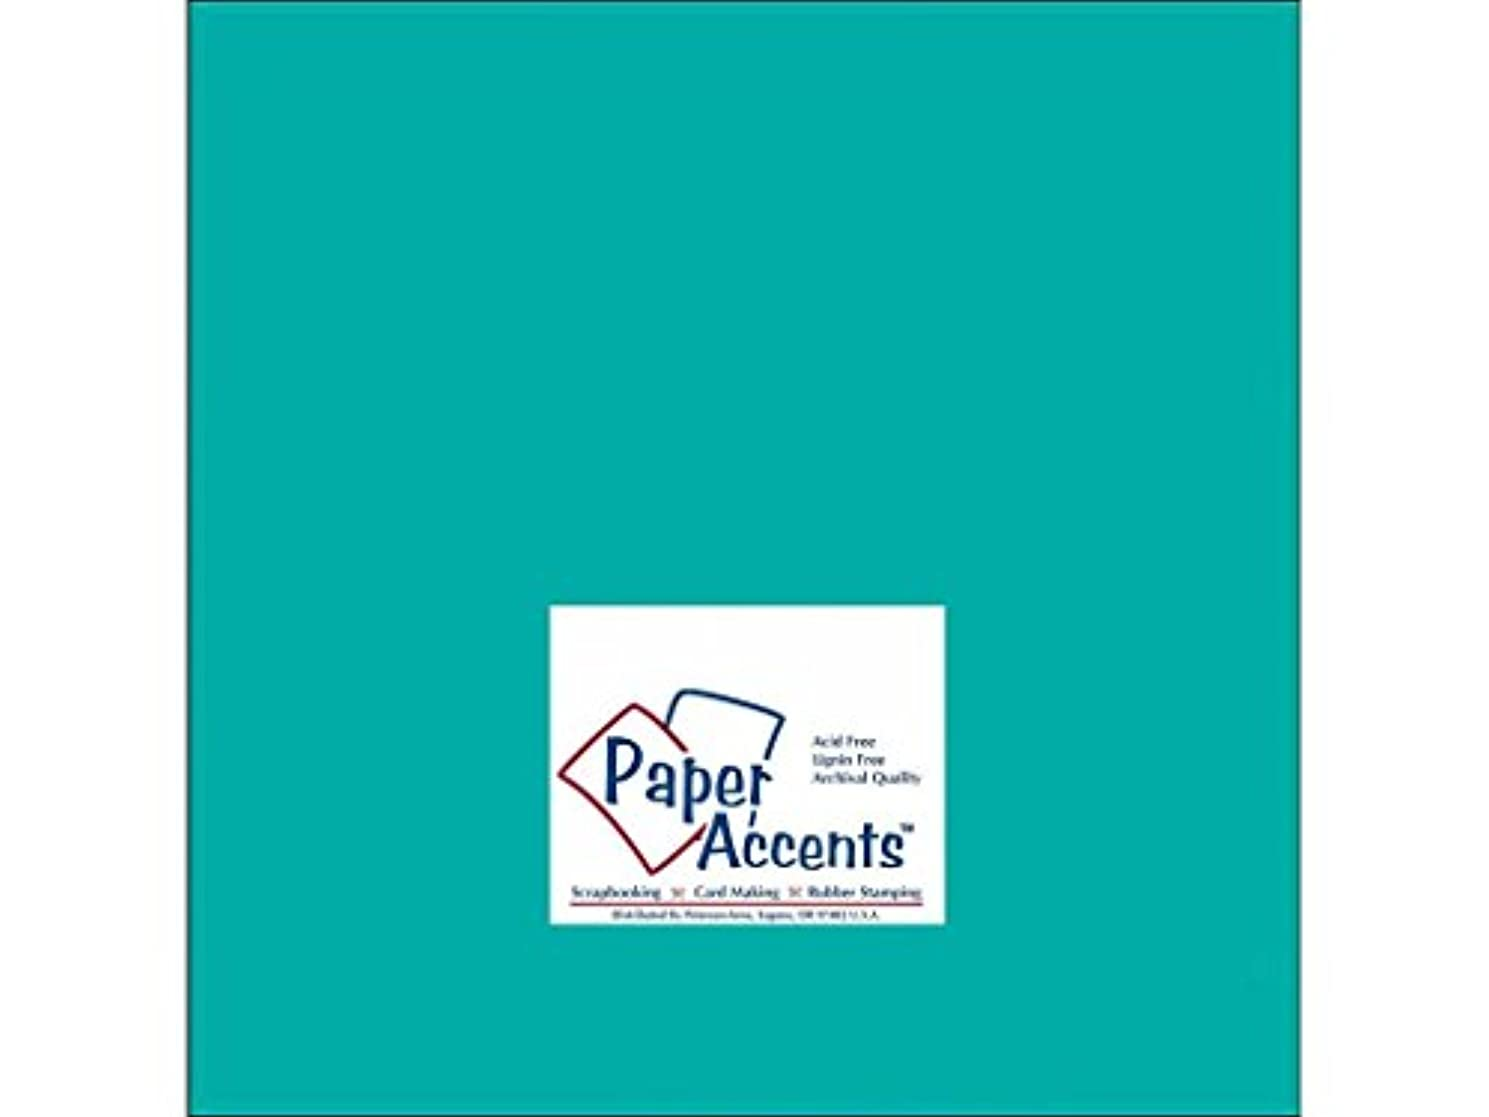 Accent Design Paper Accents Cdstk Smooth 12x12 65# Sea Blue